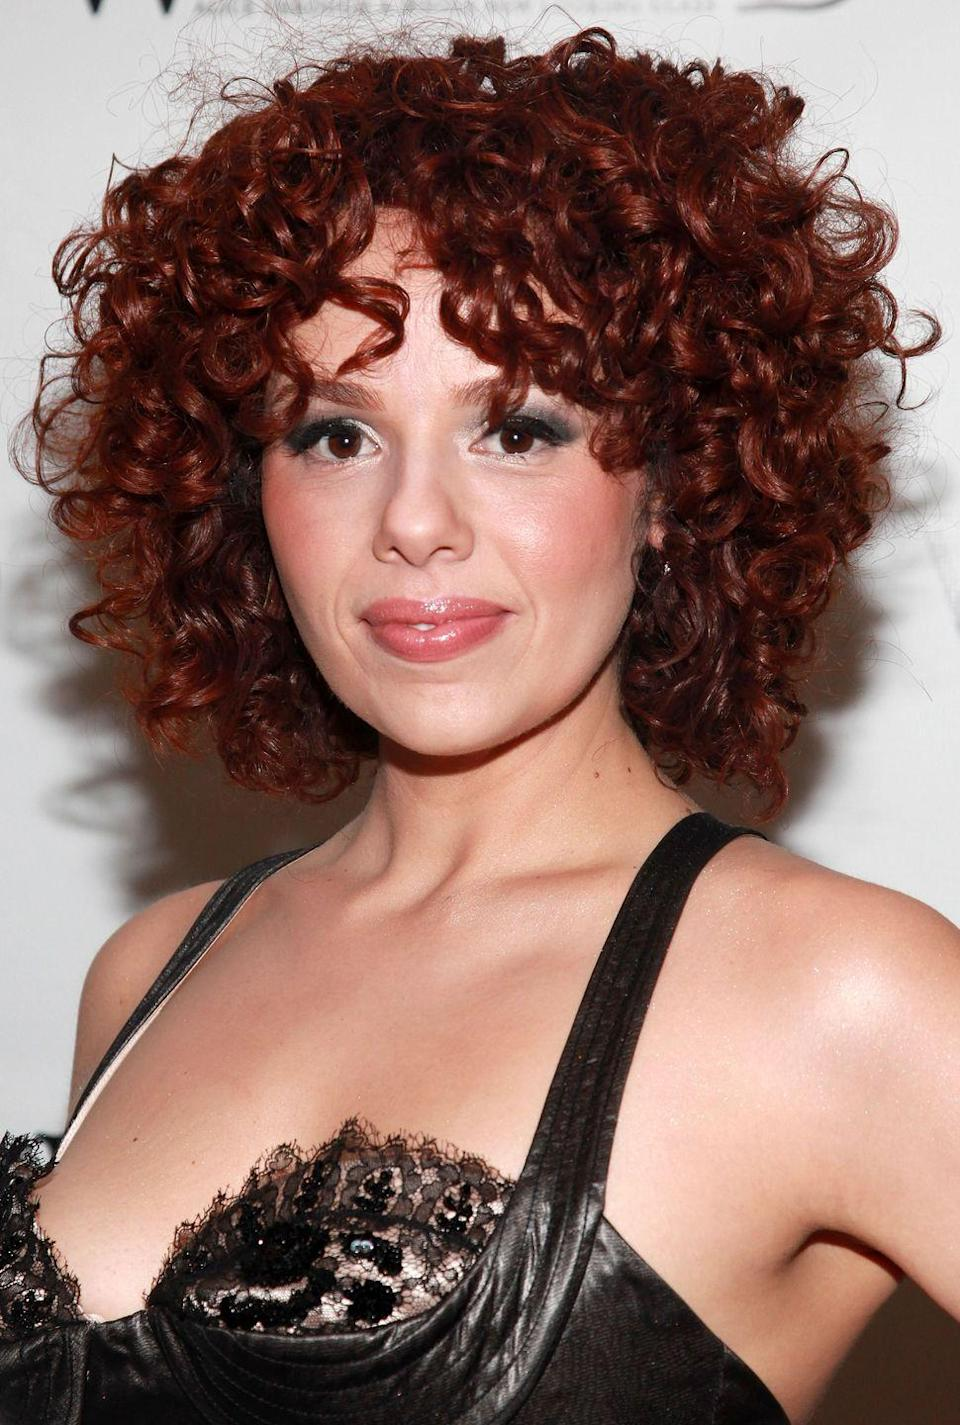 <p>Dacal's biggest role was Carla in Miranda's original play. But that's not to say she hasn't been back on stage. In fact, she's appeared as the lead performer in <em>Prince of Broadway</em>, a limited run-musical. As of right now, she's performing in 10-time Tony awarded musical, <em>The Band's Visit</em>.</p>